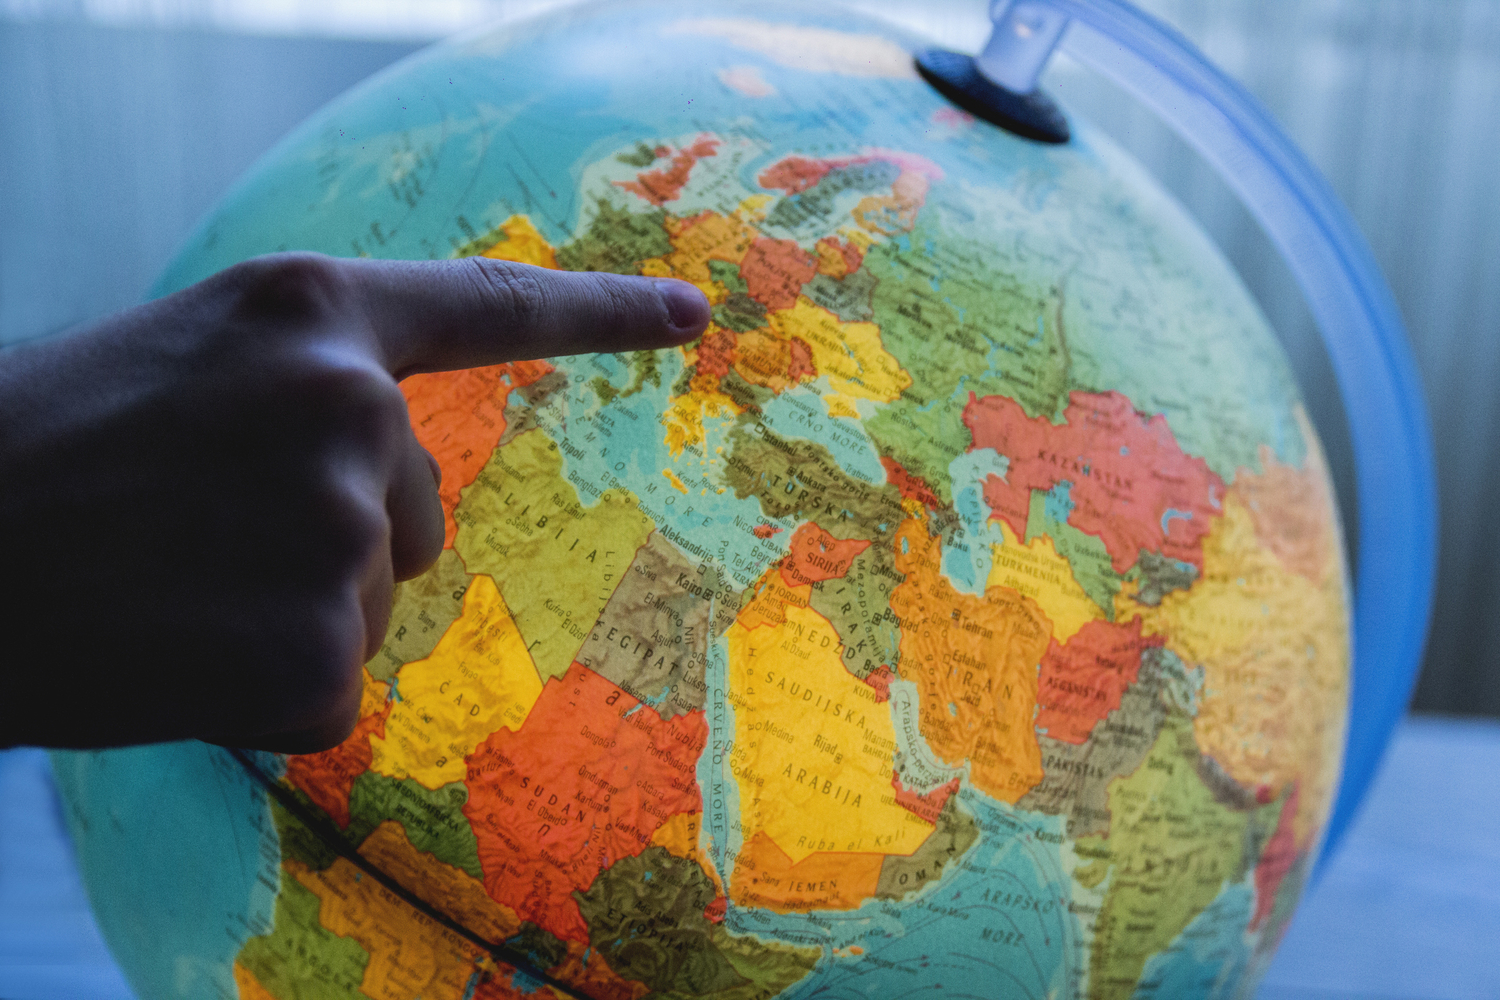 Finger pointing on globe